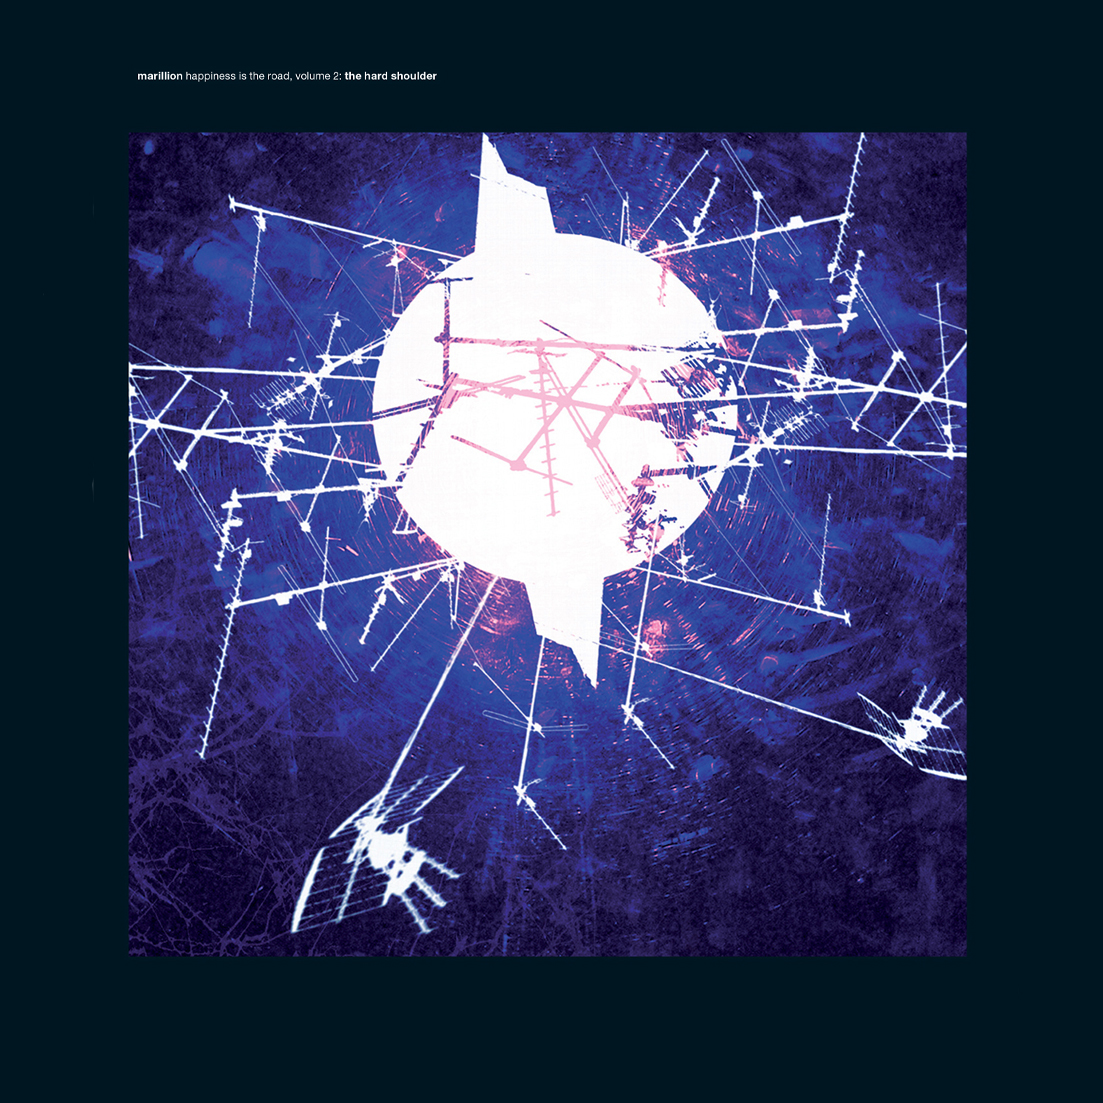 HAPPINESS IS THE ROAD VOL 2 HARD SHOULDER VINYL